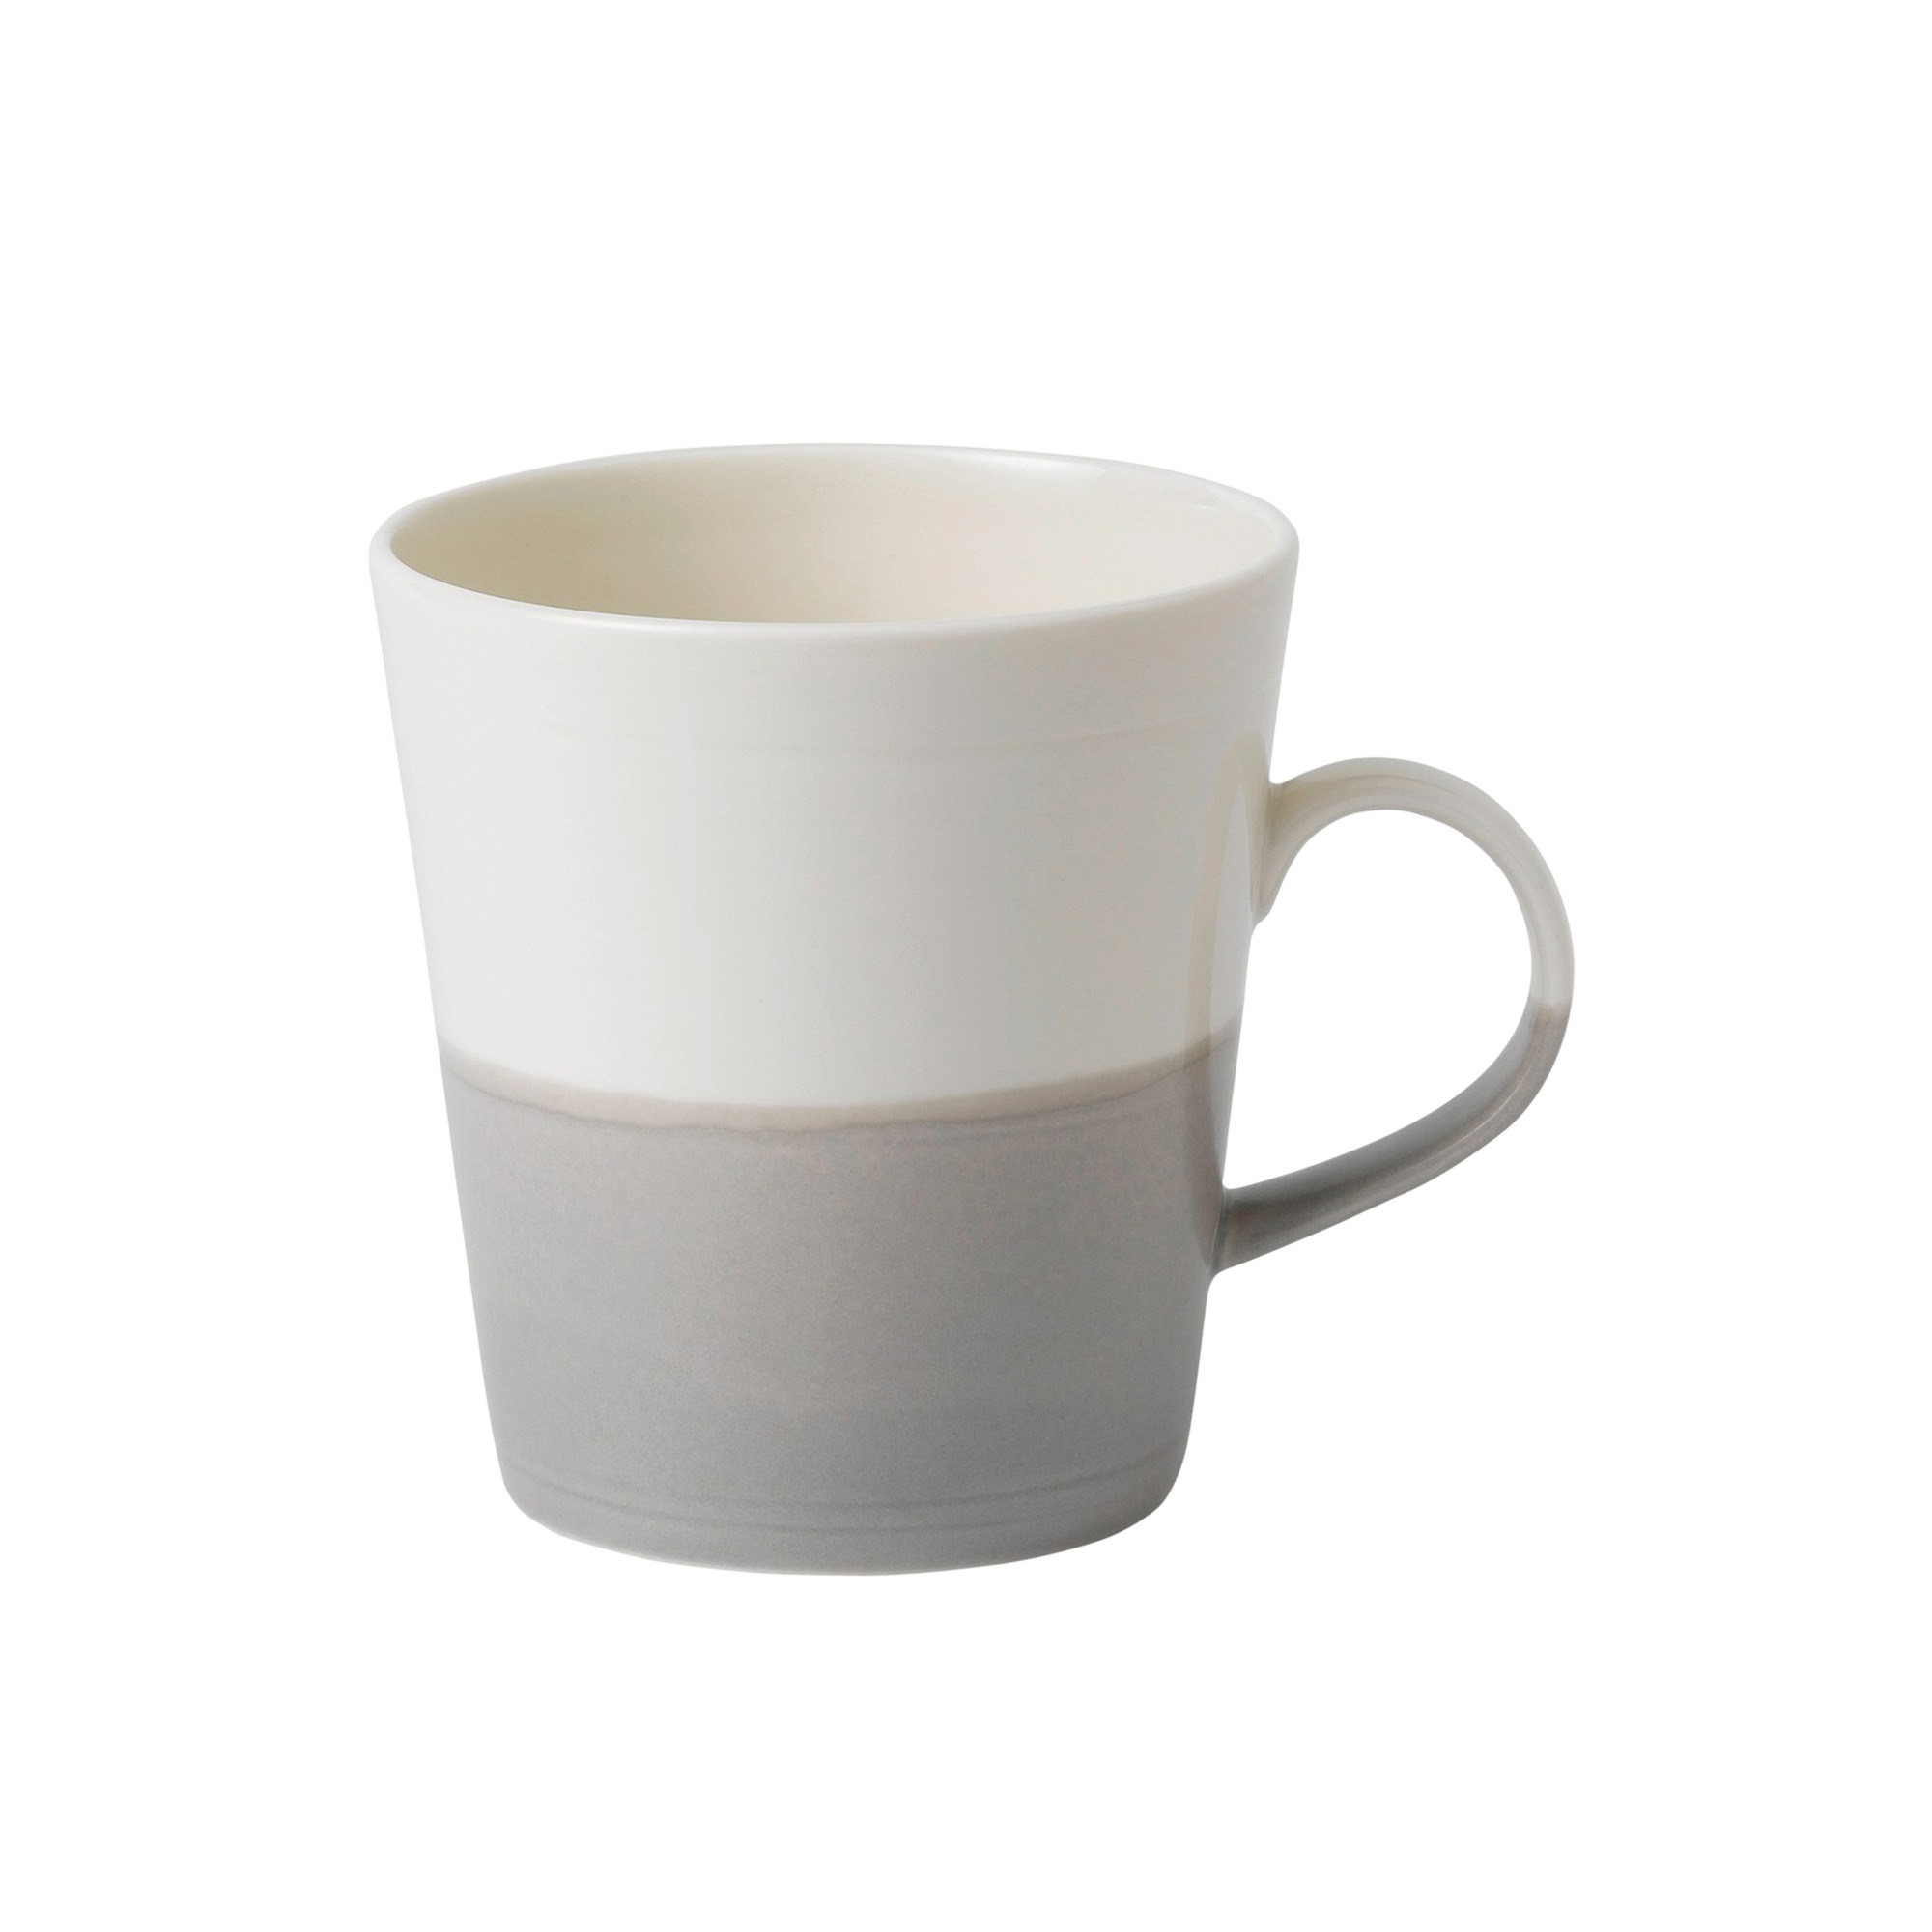 Royal Doulton Coffee Studio Grande Mug 500ml